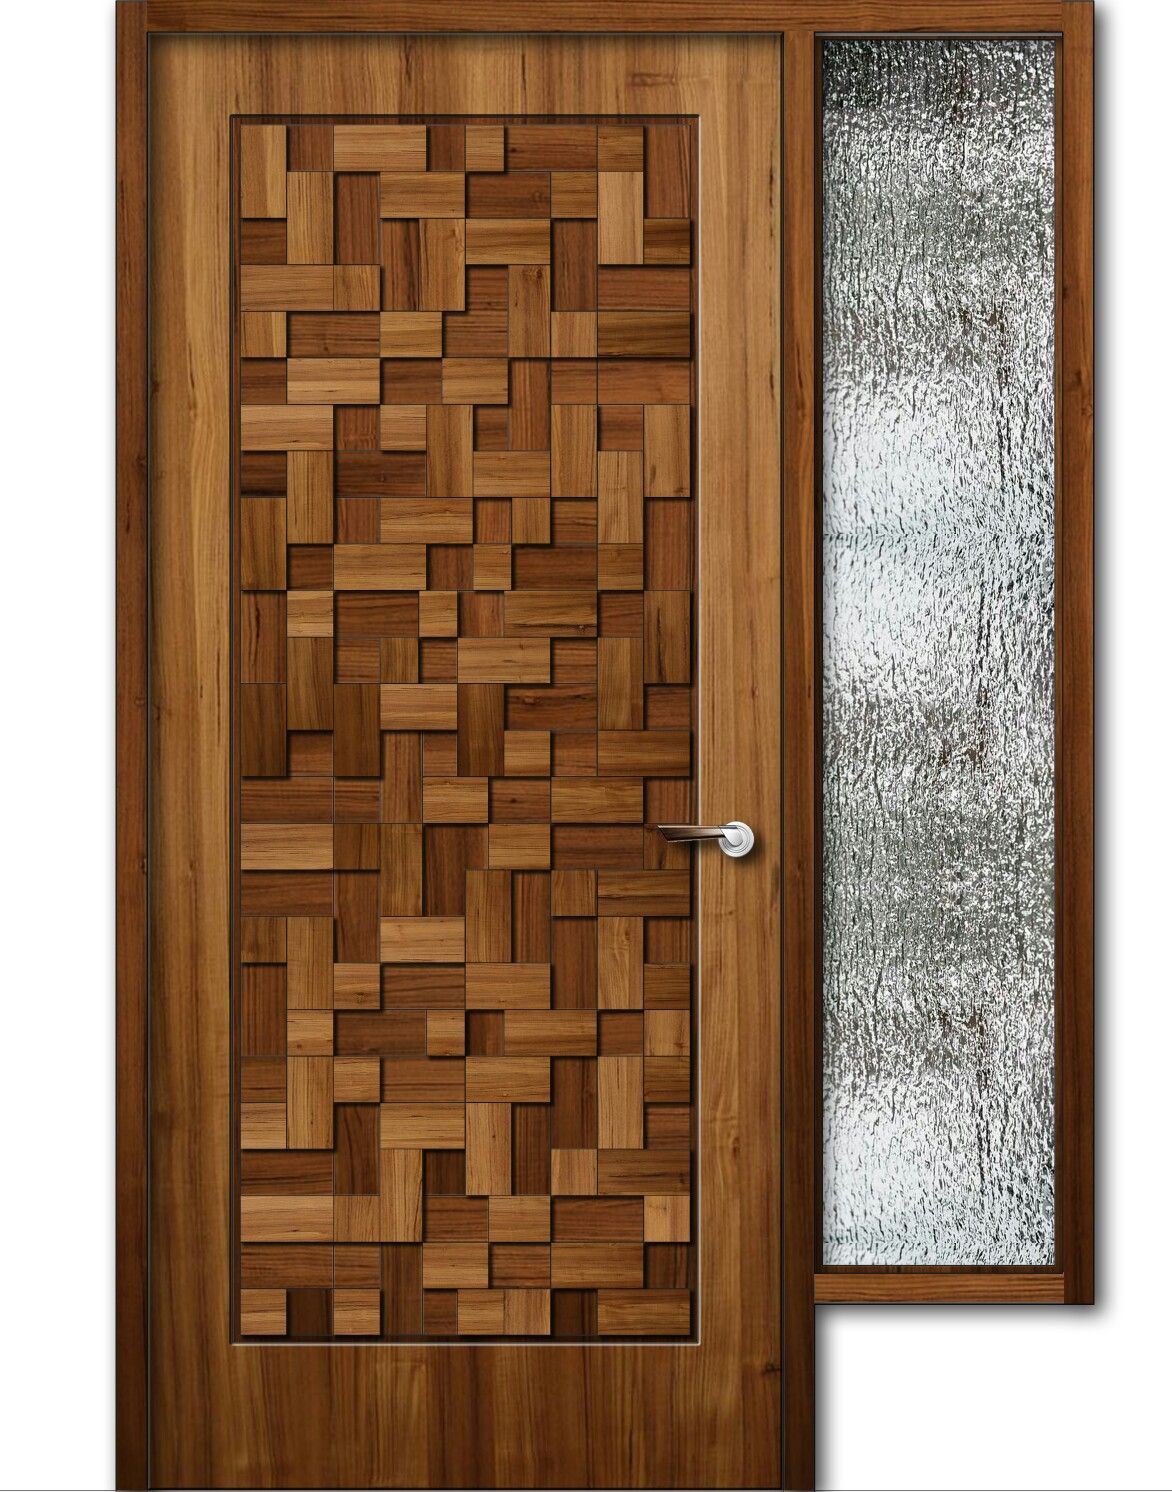 Teak wood finish wooden door with window 8feet height for Modern design main door